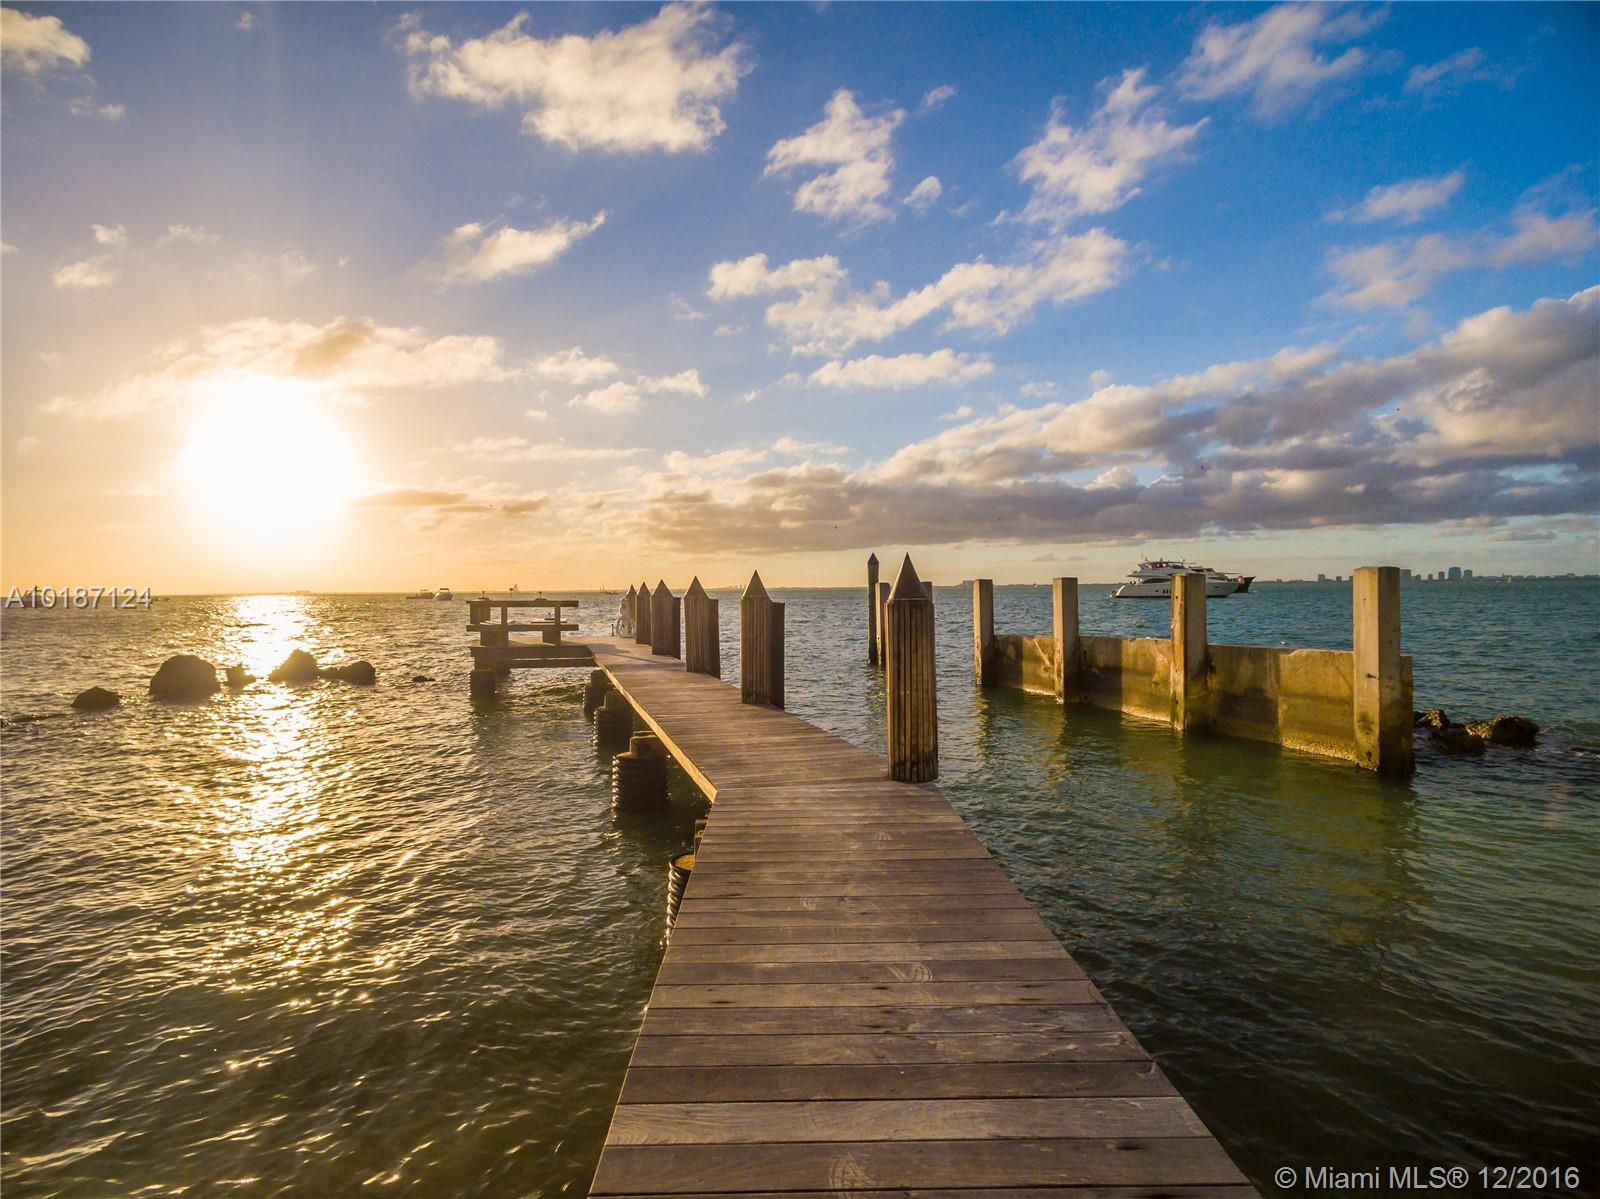 7 Harbor Point Key Biscayne Mls A10187124 For Sale